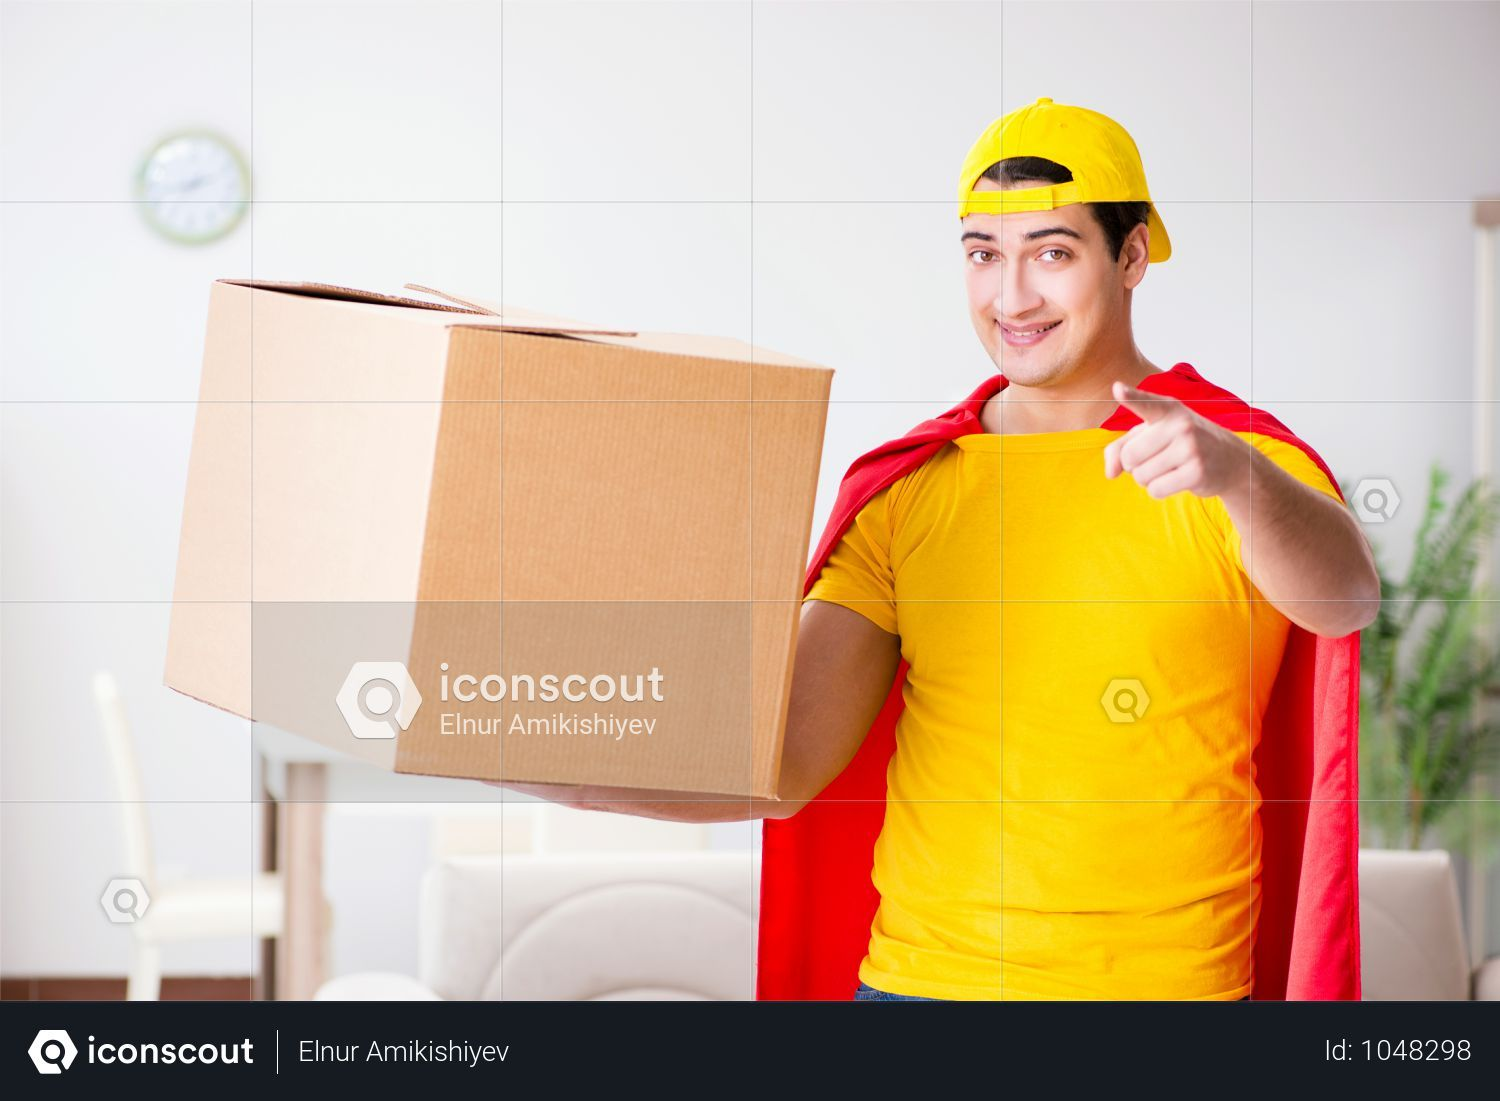 Superhero Delivery Guy With Box Photo Delivery Photos Pizza Delivery Guy Guys